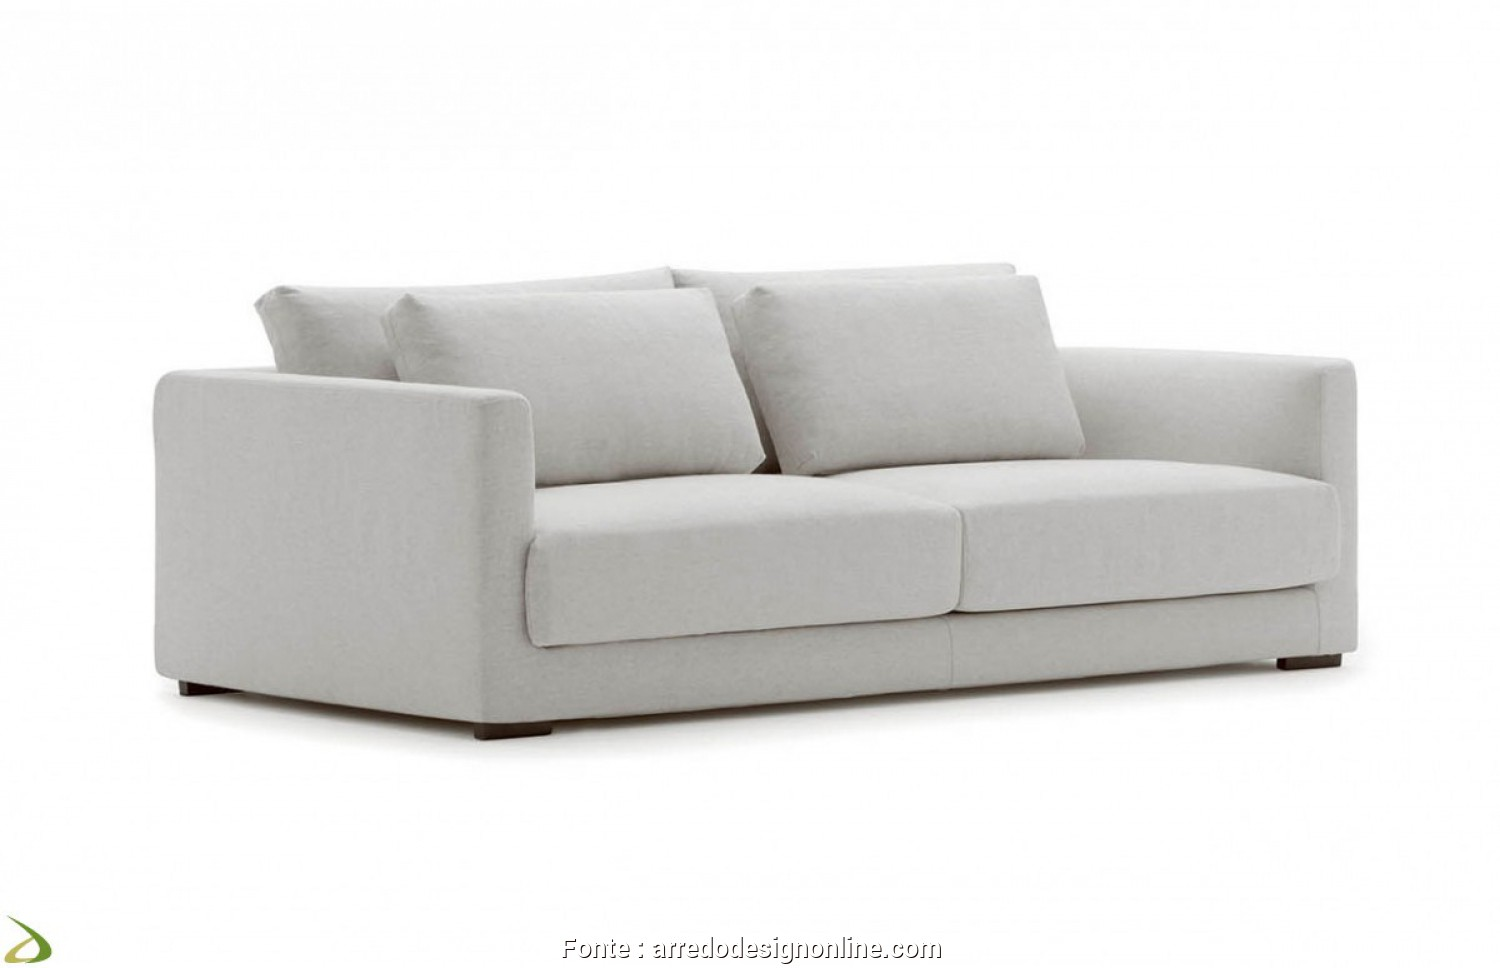 Divano 2 Seater Sofa, Affascinante 2 Seat Sofa With Double Back Cushions